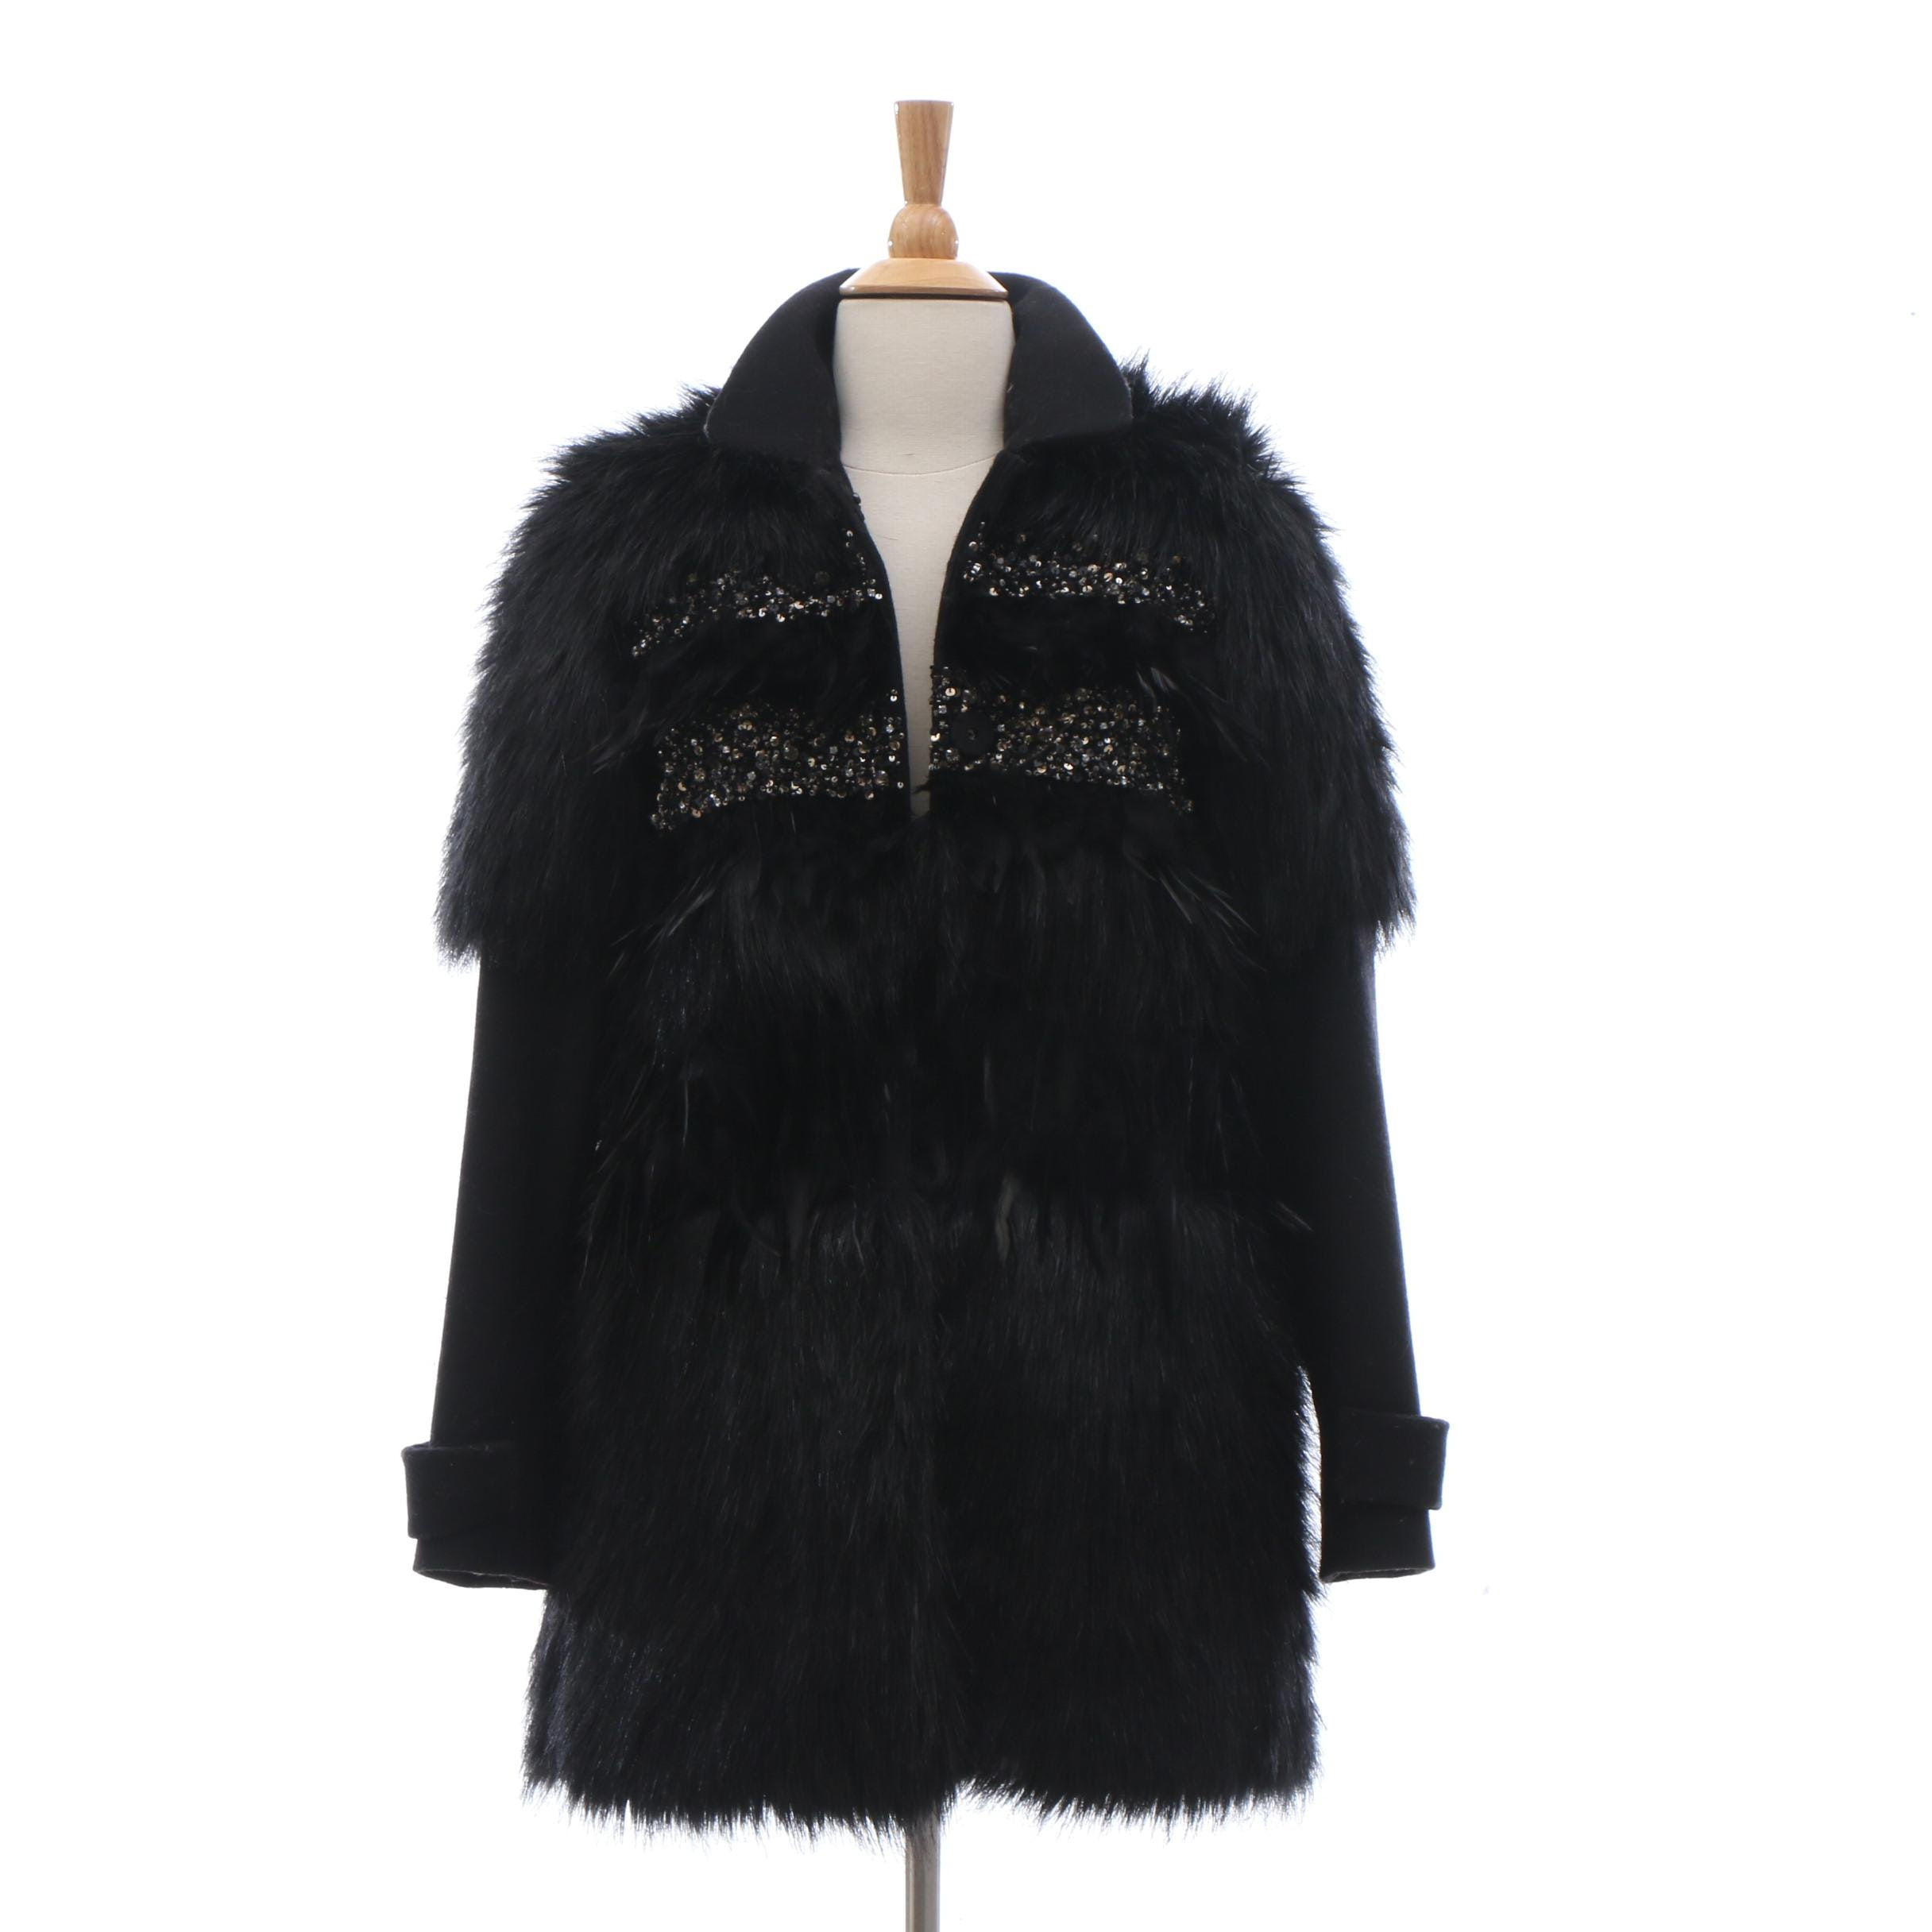 Juicy Couture Black Wool Blend Jacket with Faux Fur, Feather and Embellisments